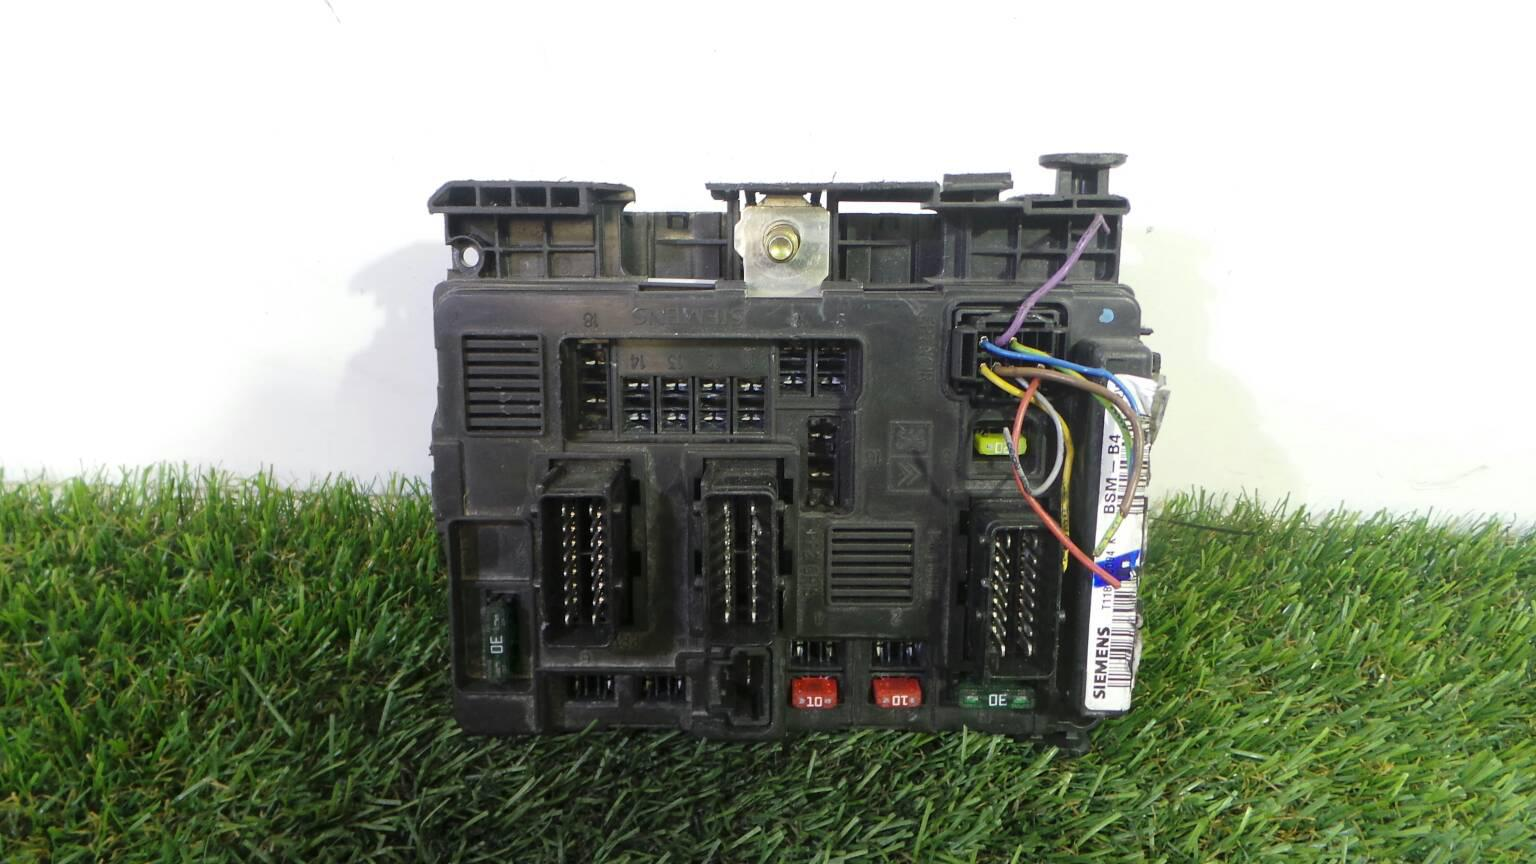 Citroen C3 Fuse Box Wiring Library For 96 434 98780 00 Citron Pluriel Hb 14 Hdi